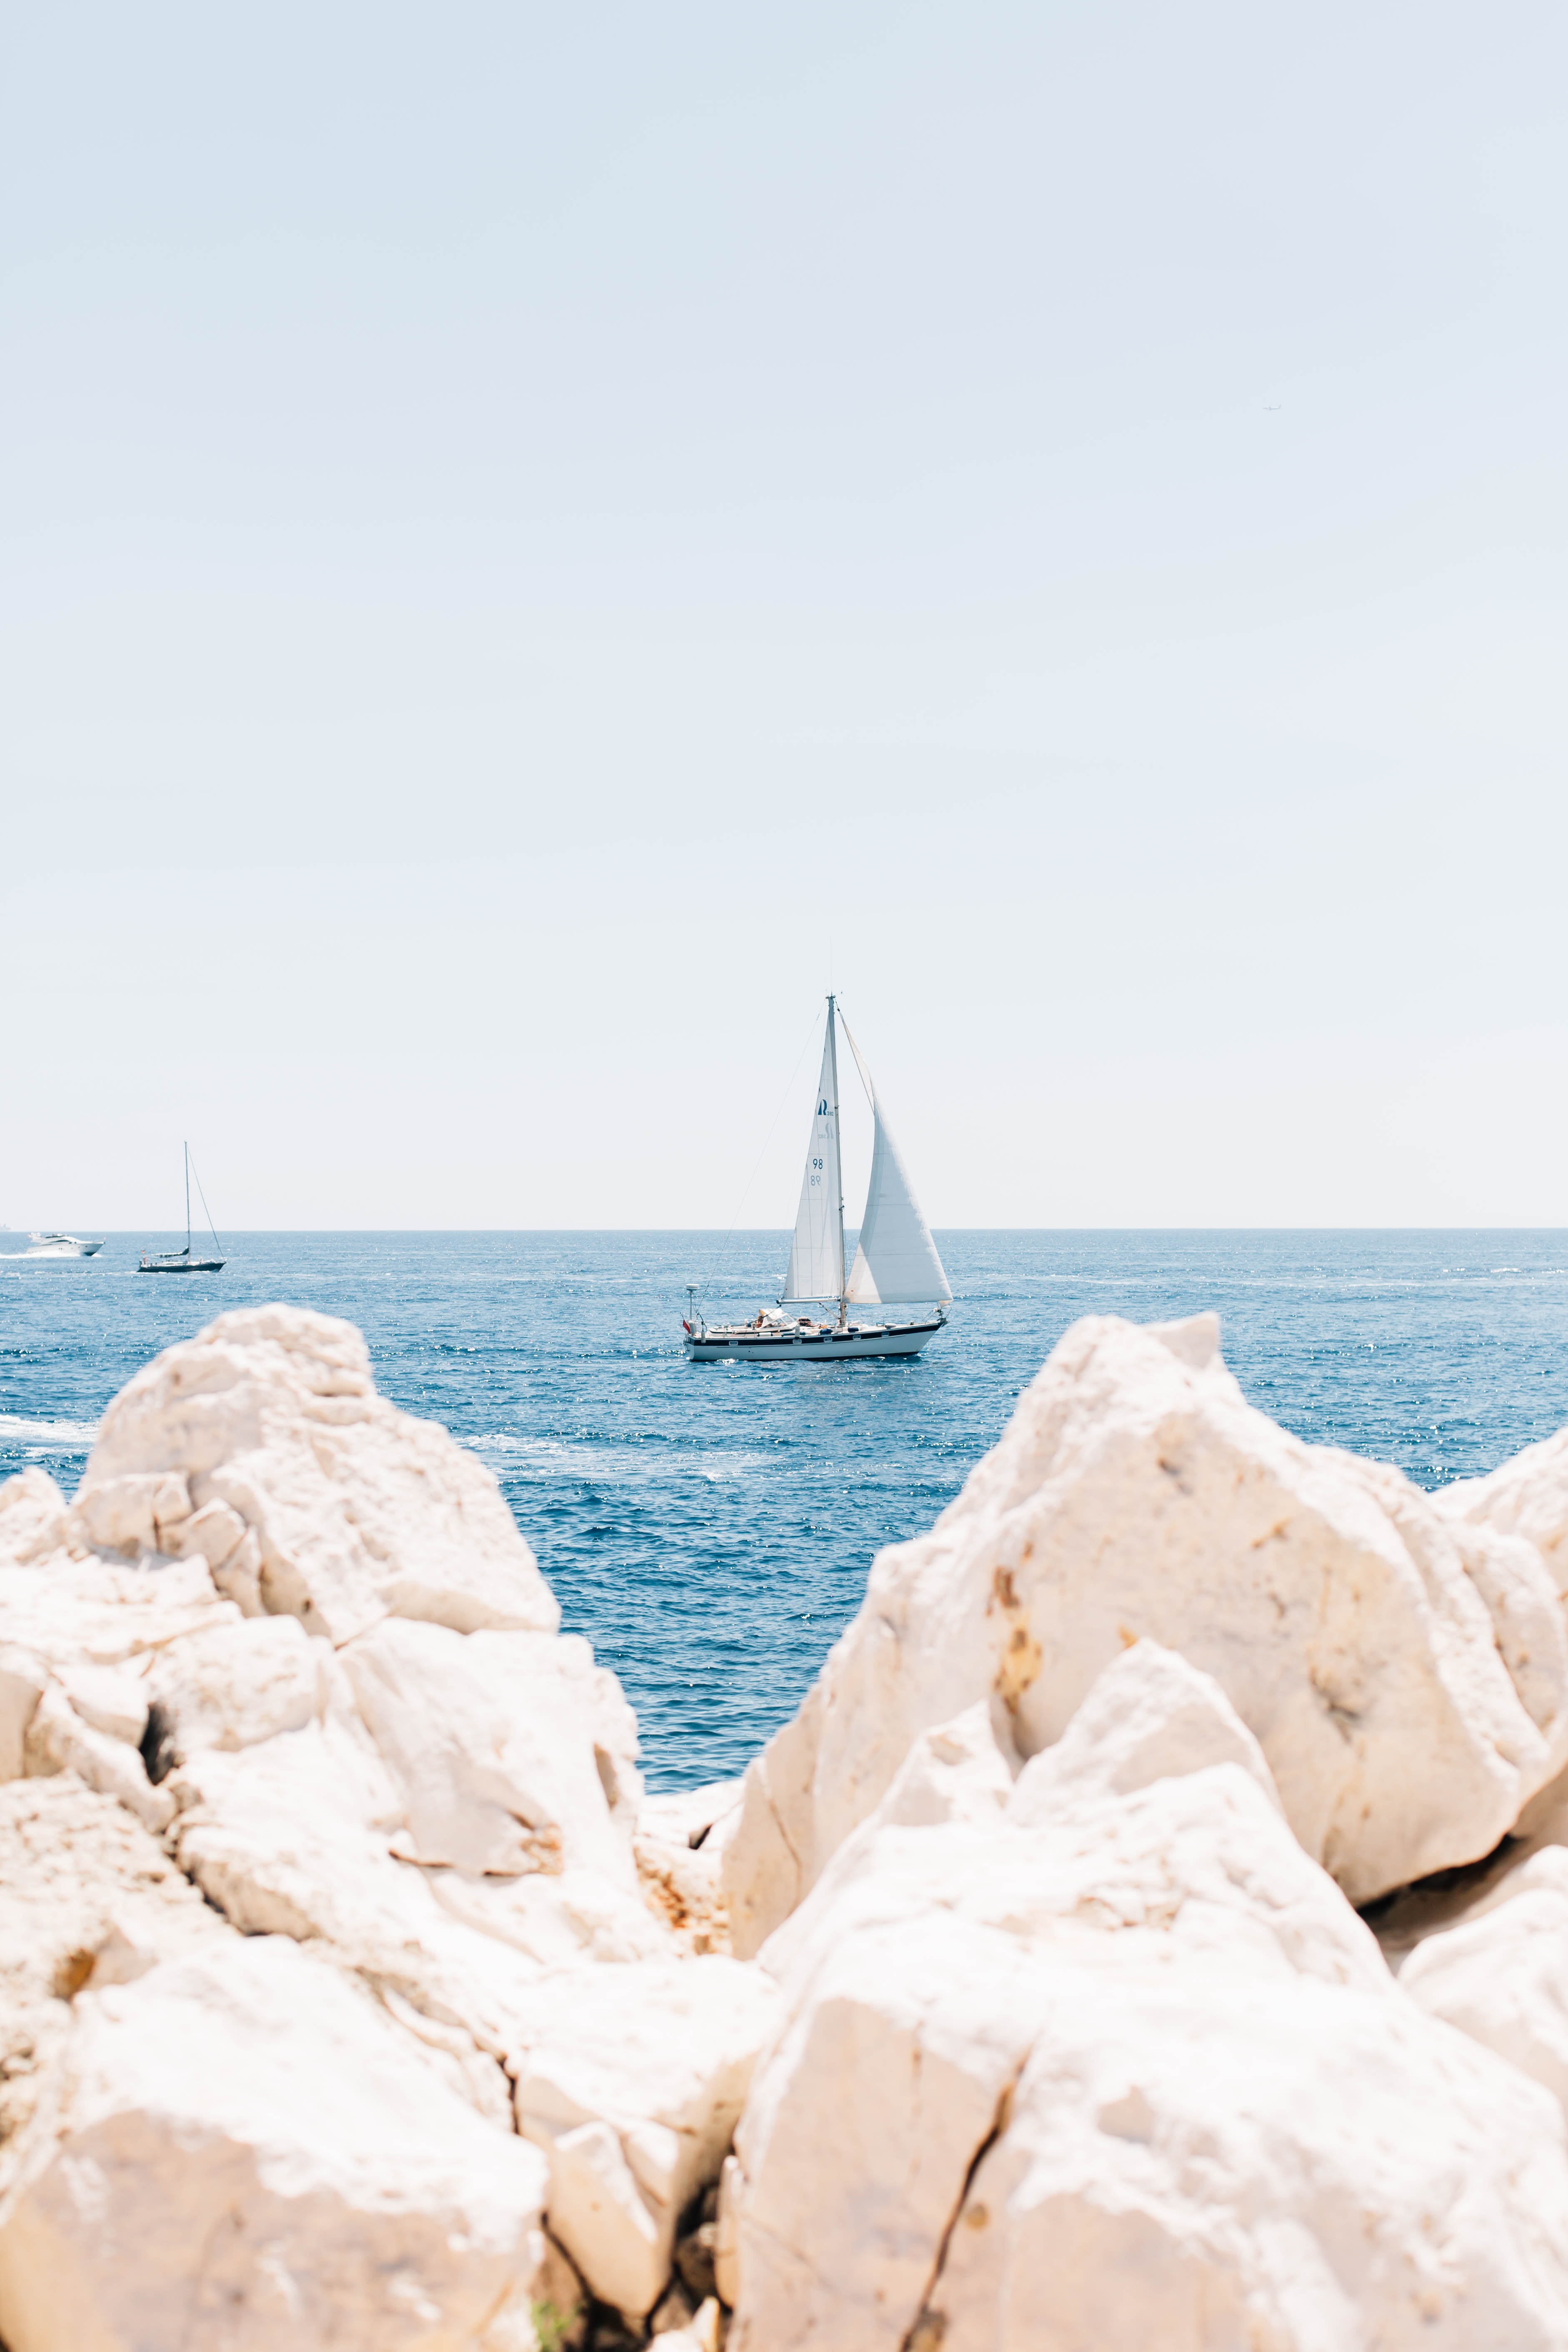 white sail boat on body of water